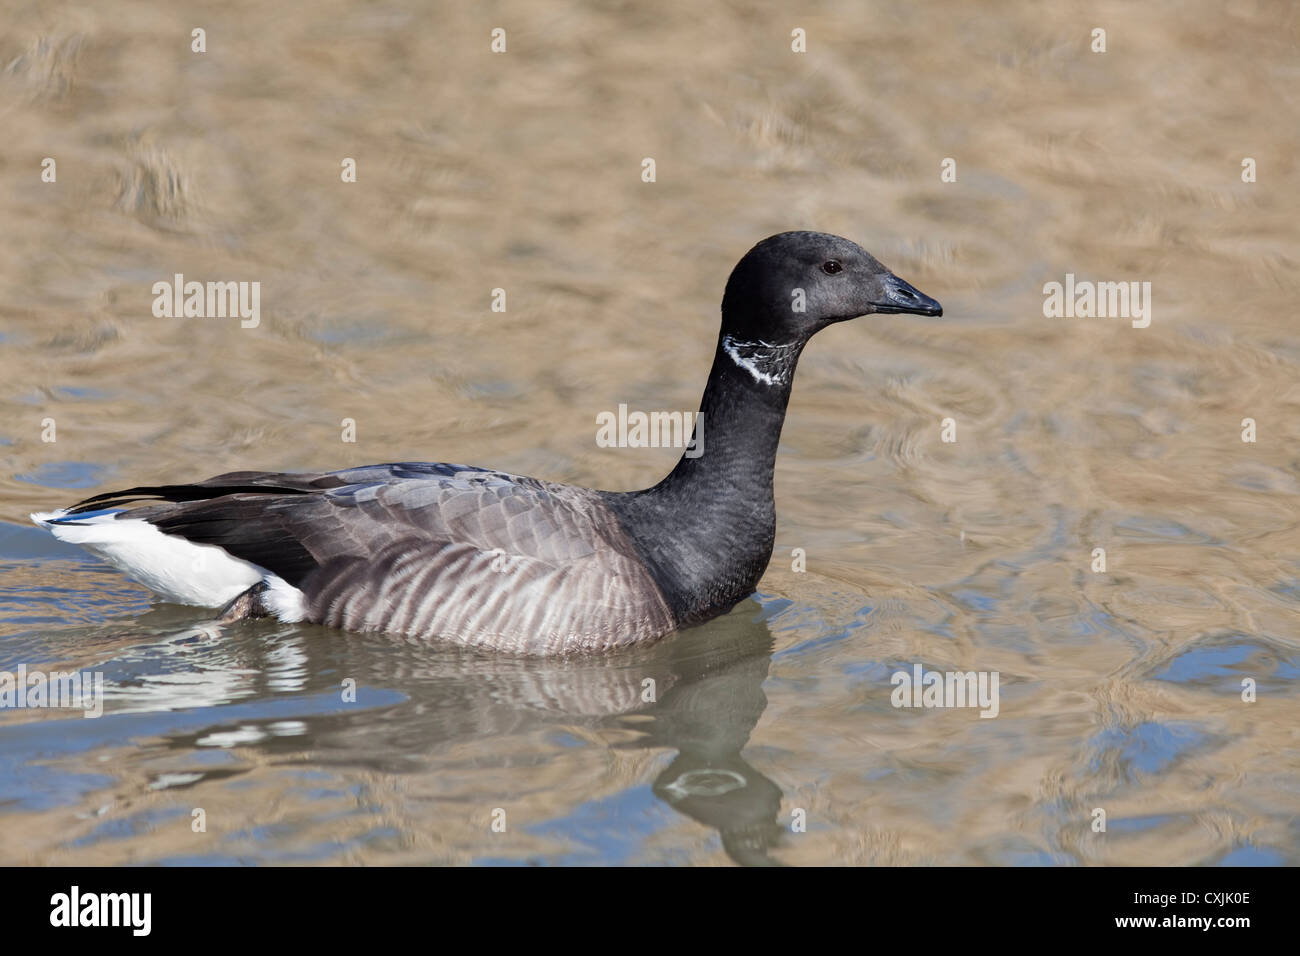 Brent goose - Stock Image